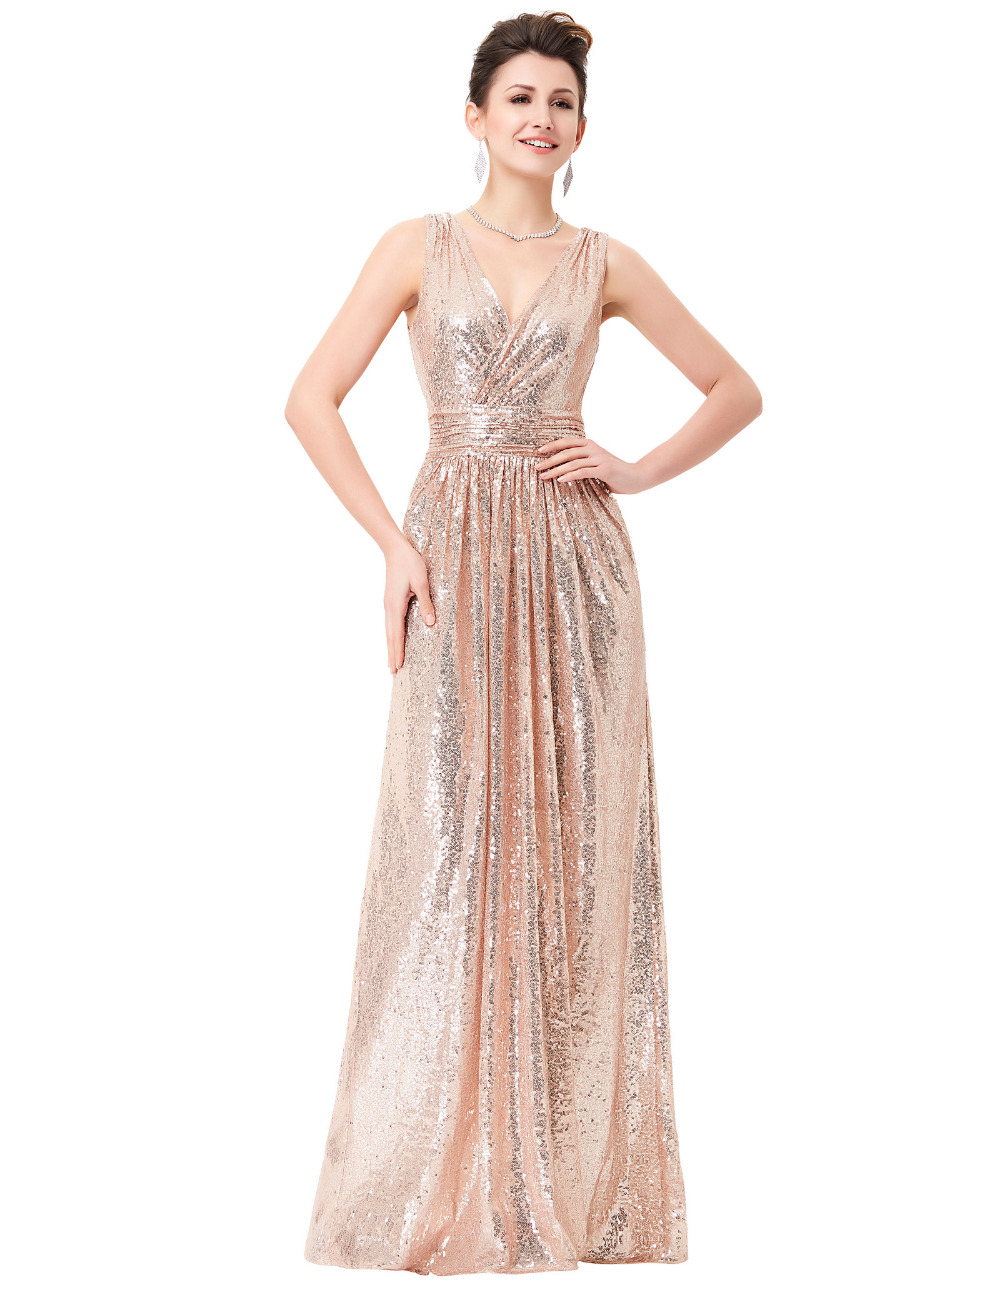 Wedding Rose Gold Dresses rose gold prom dress gommap blog collection dresses pictures reikian reikian